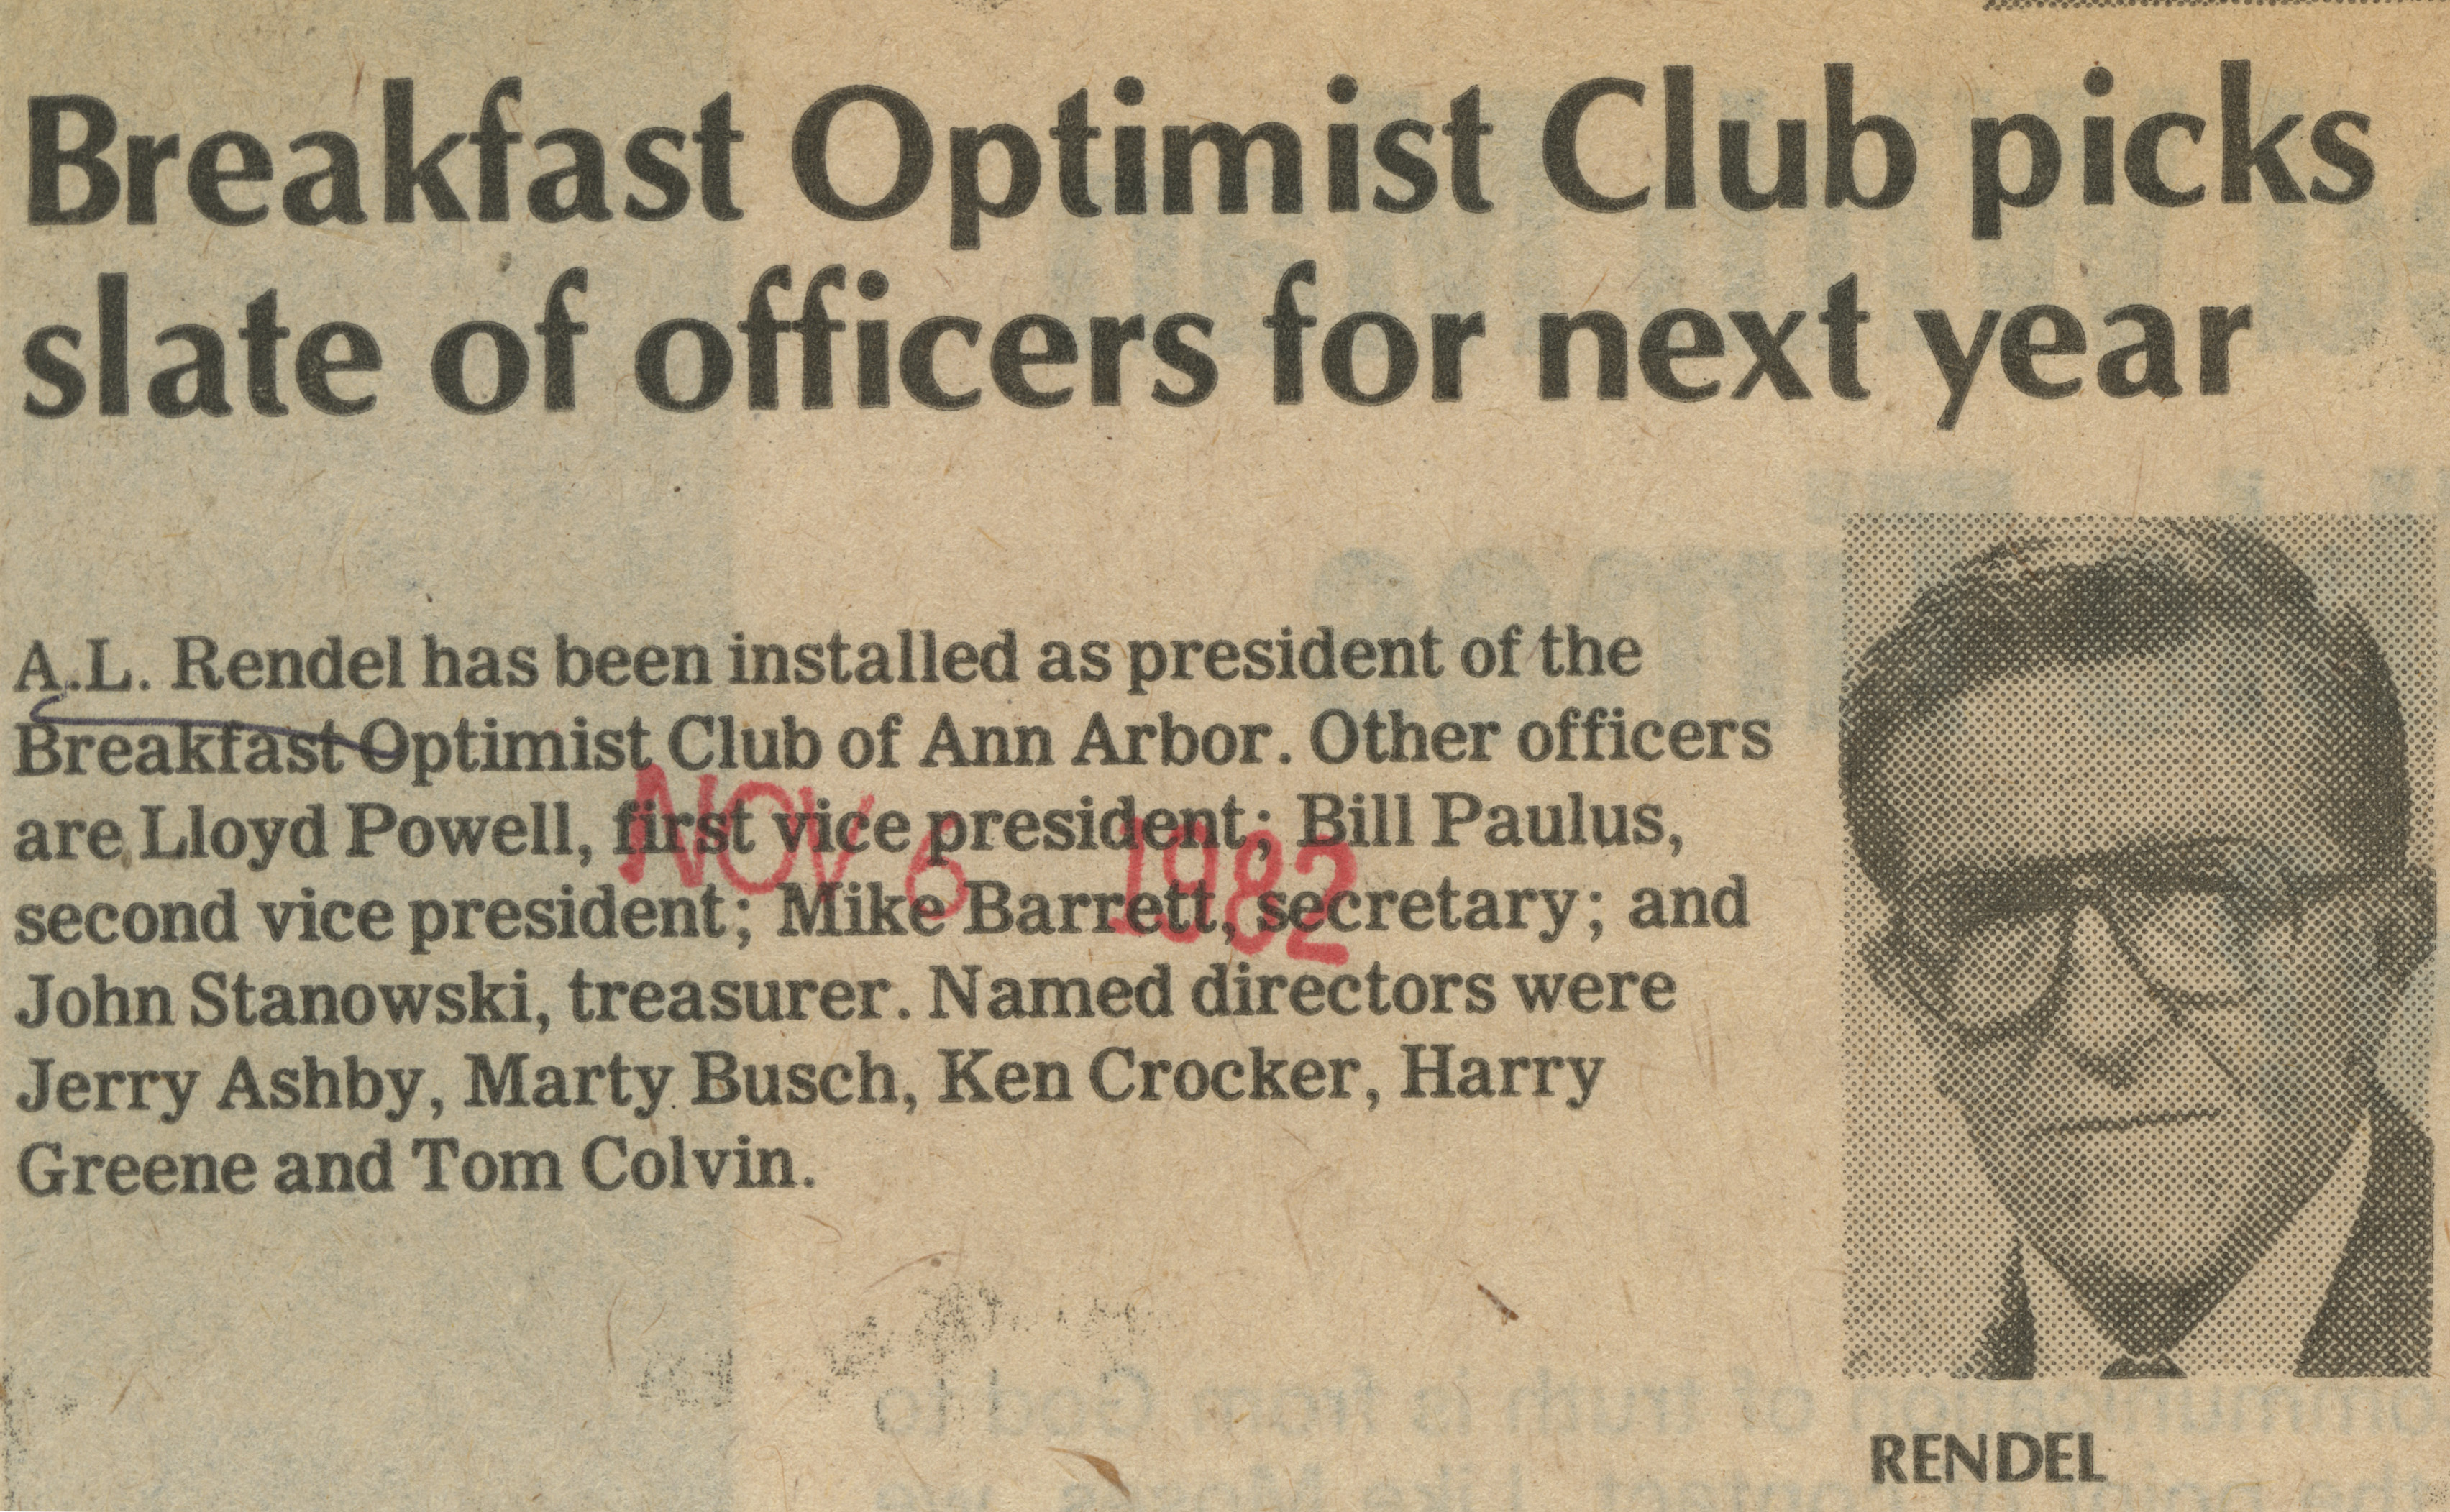 Breakfast Optimist Club picks slate of officers for next year image